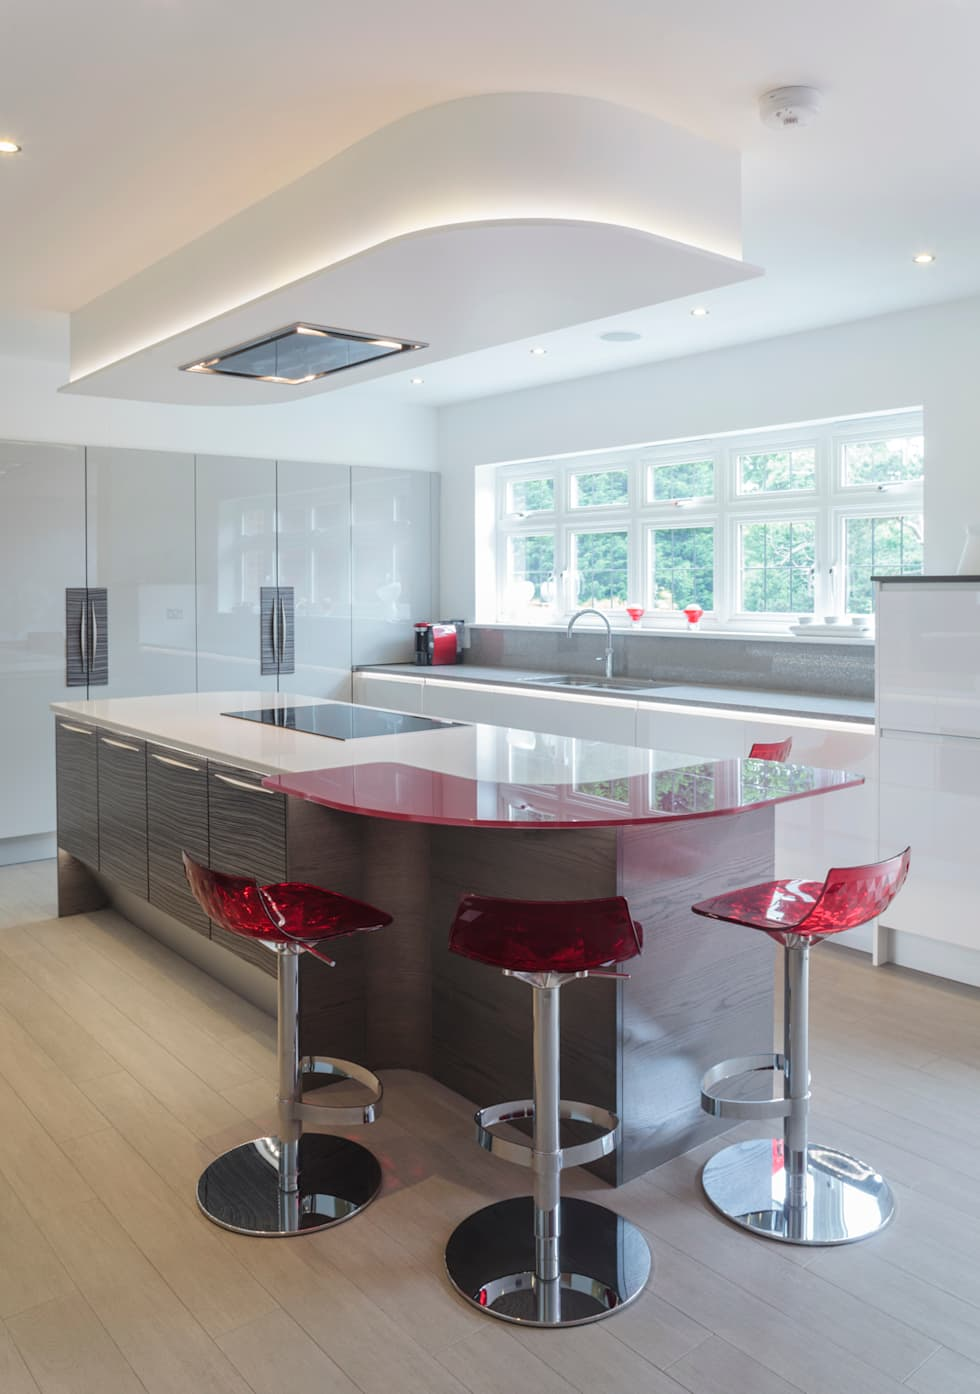 Interior design ideas redecorating remodeling photos for Infinity kitchen designs